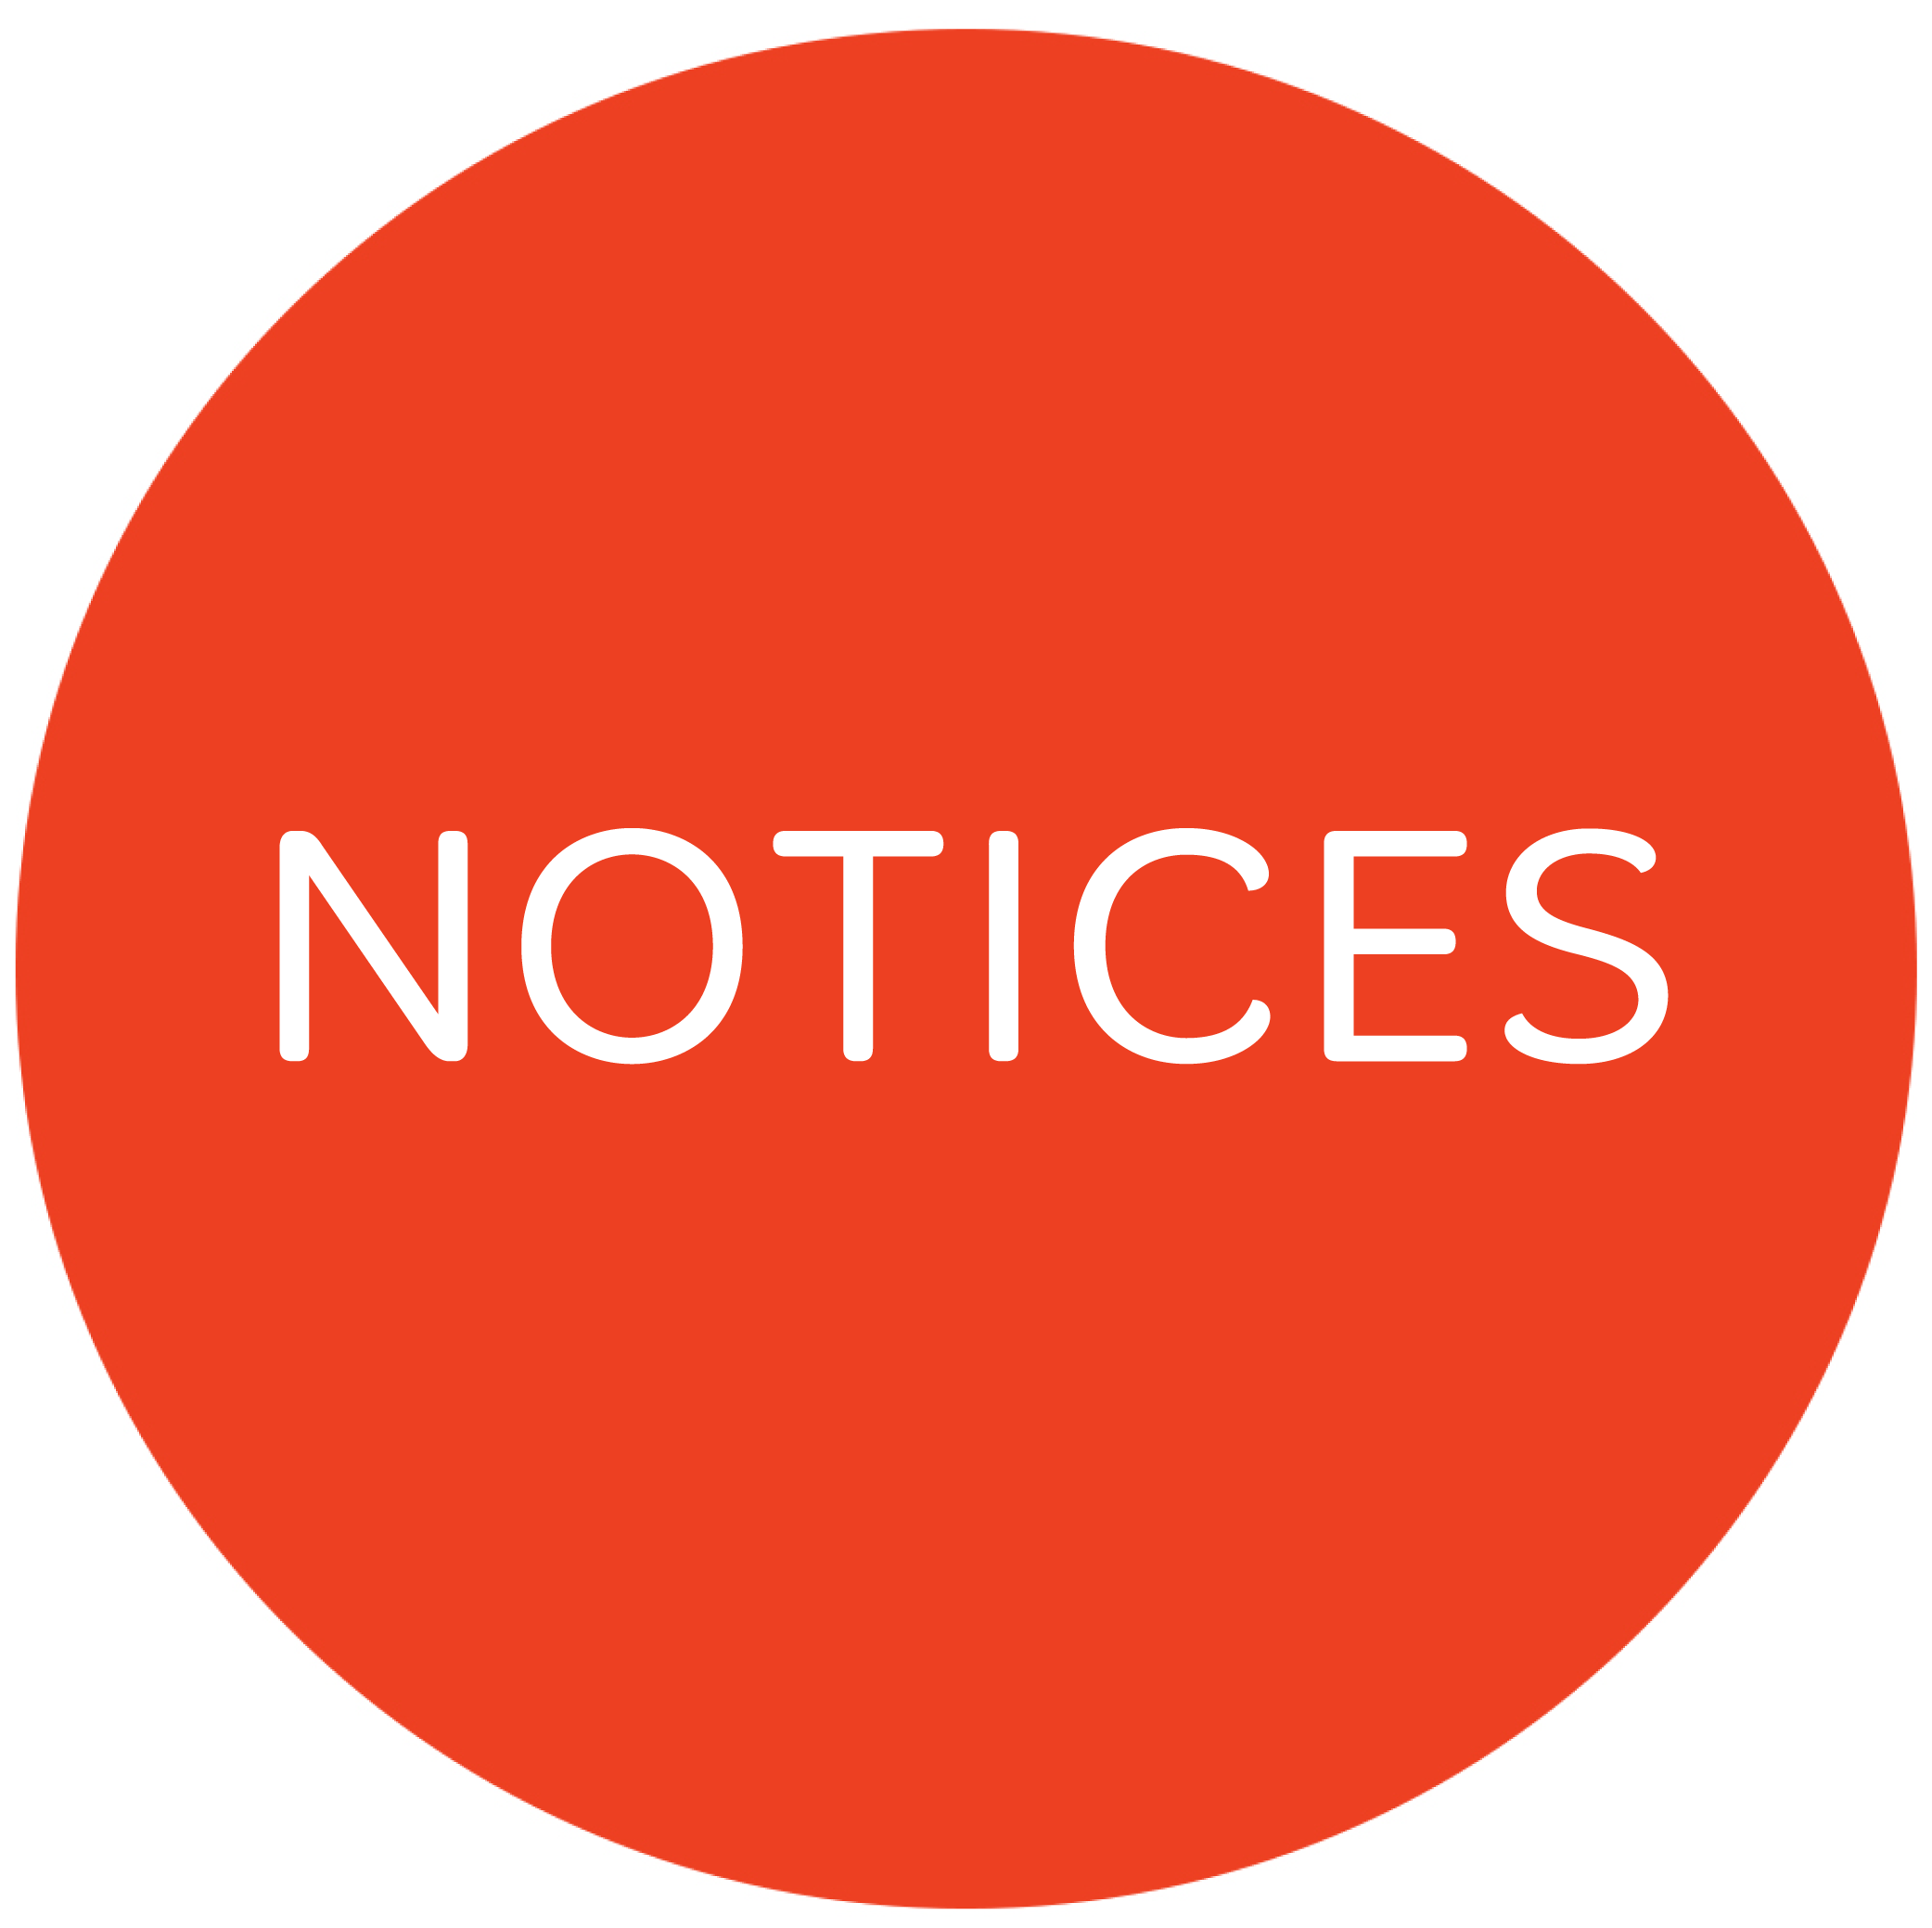 Notices- 8 July 2018